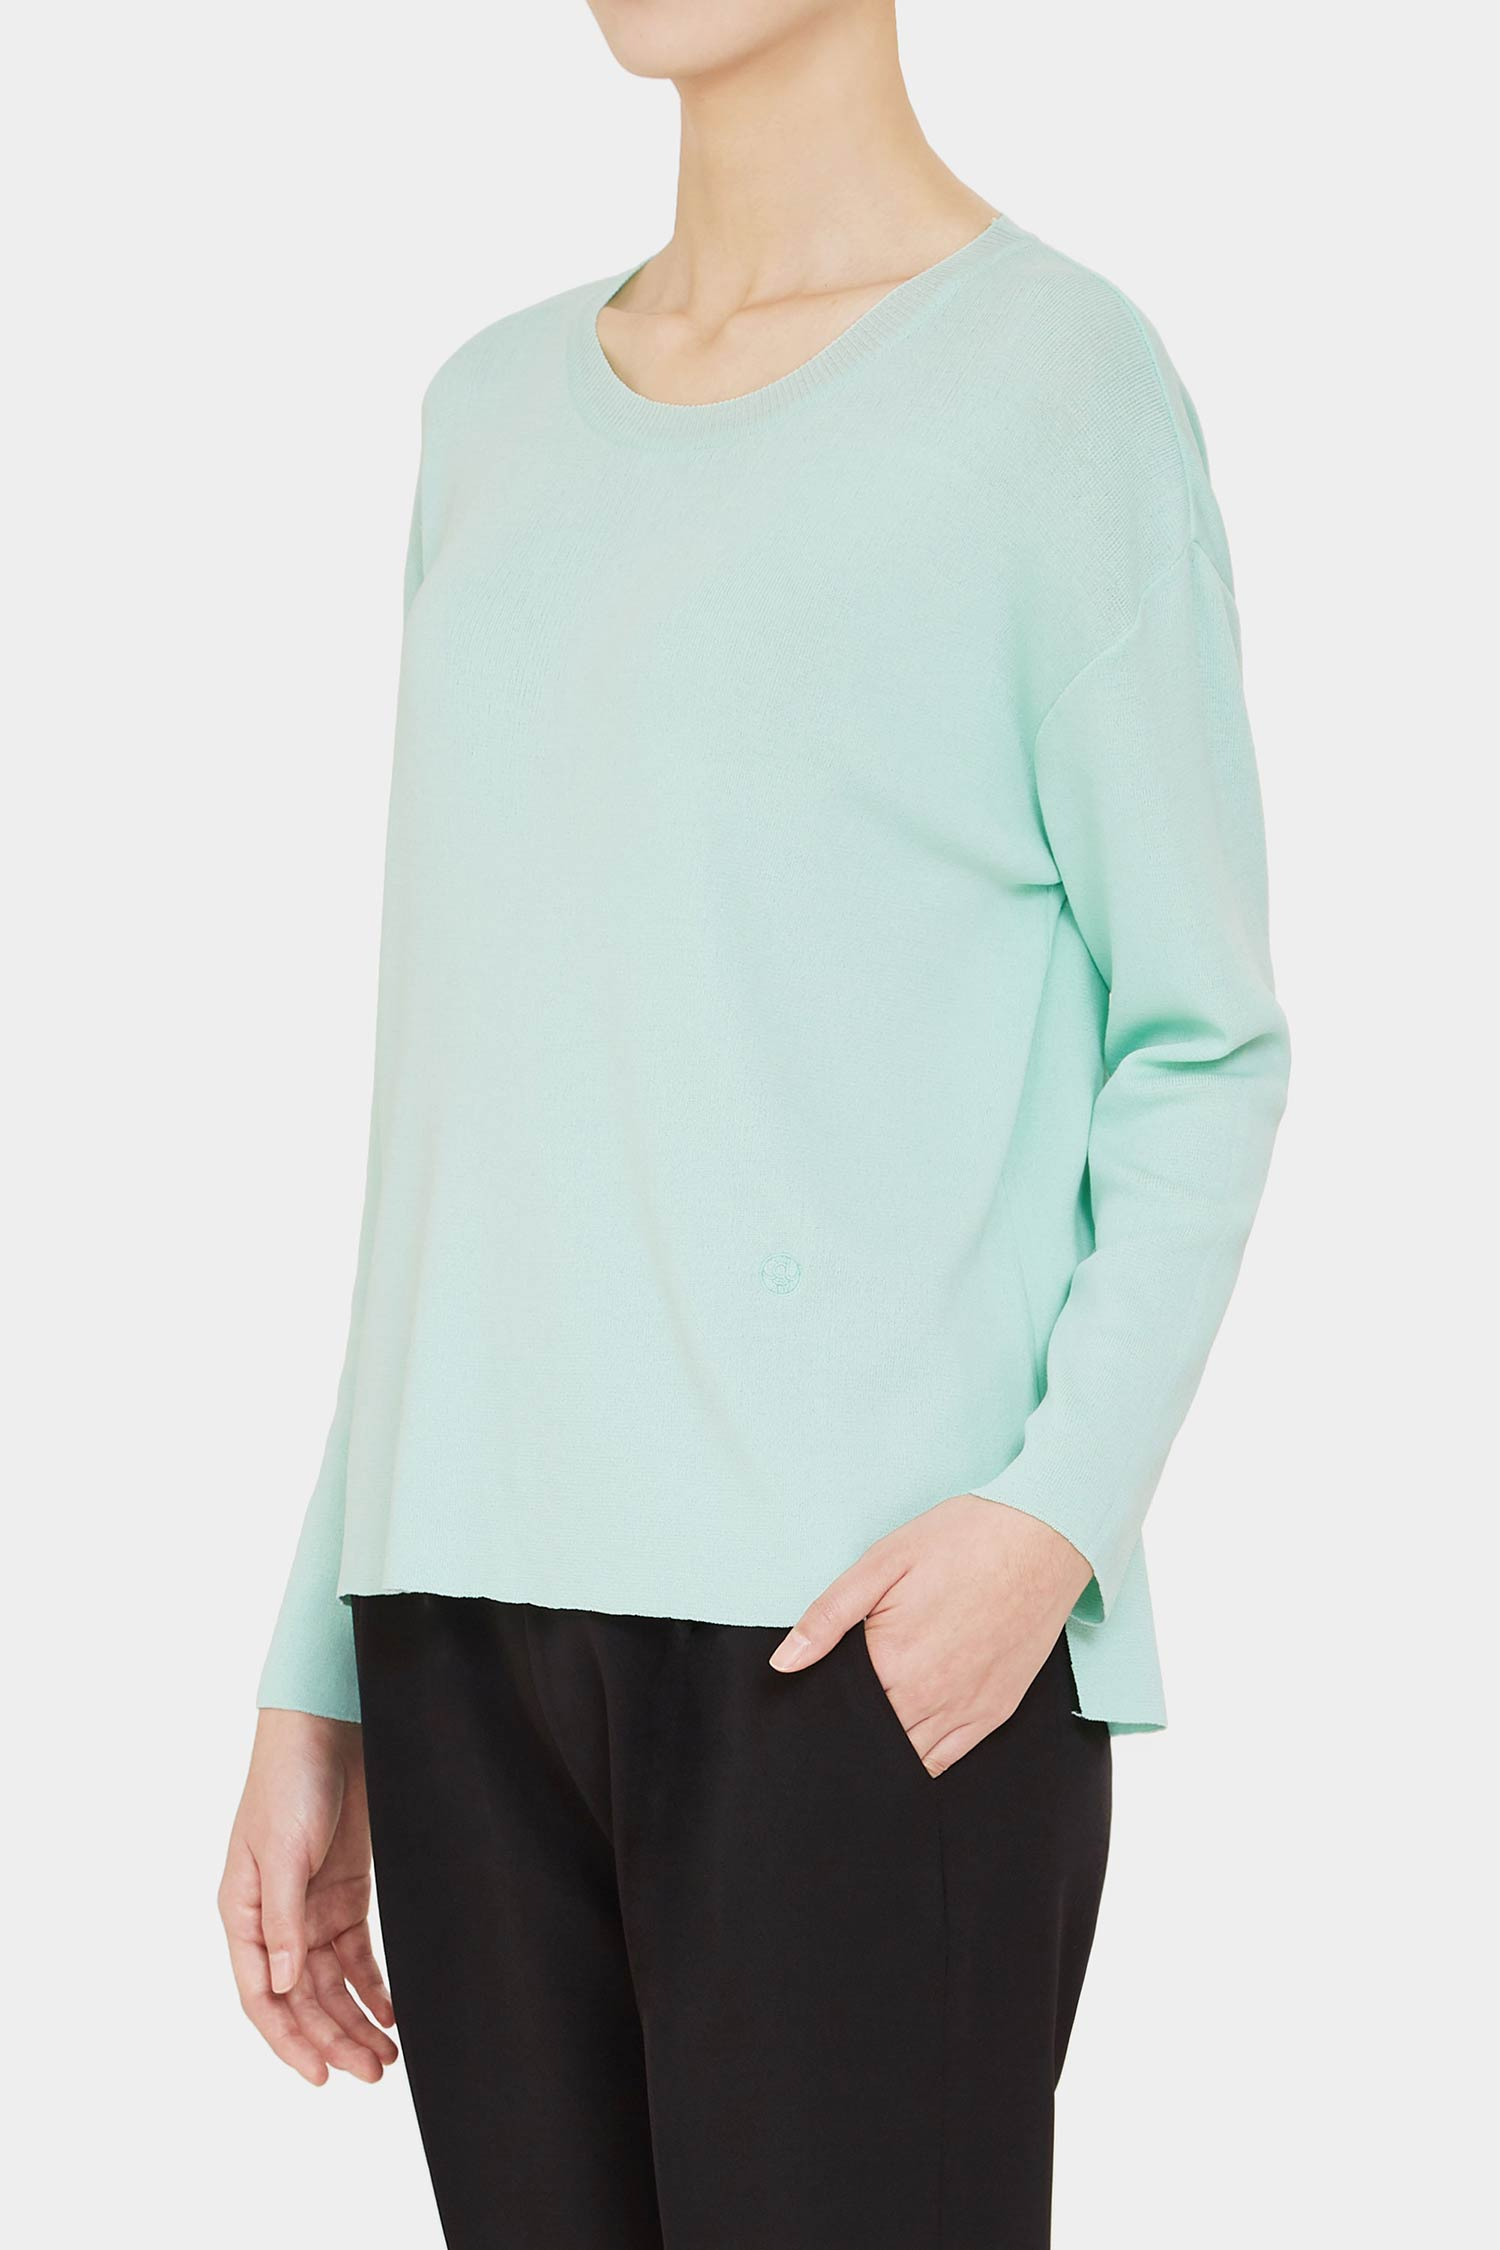 MINT ASTRID LIGHT CREWNECK